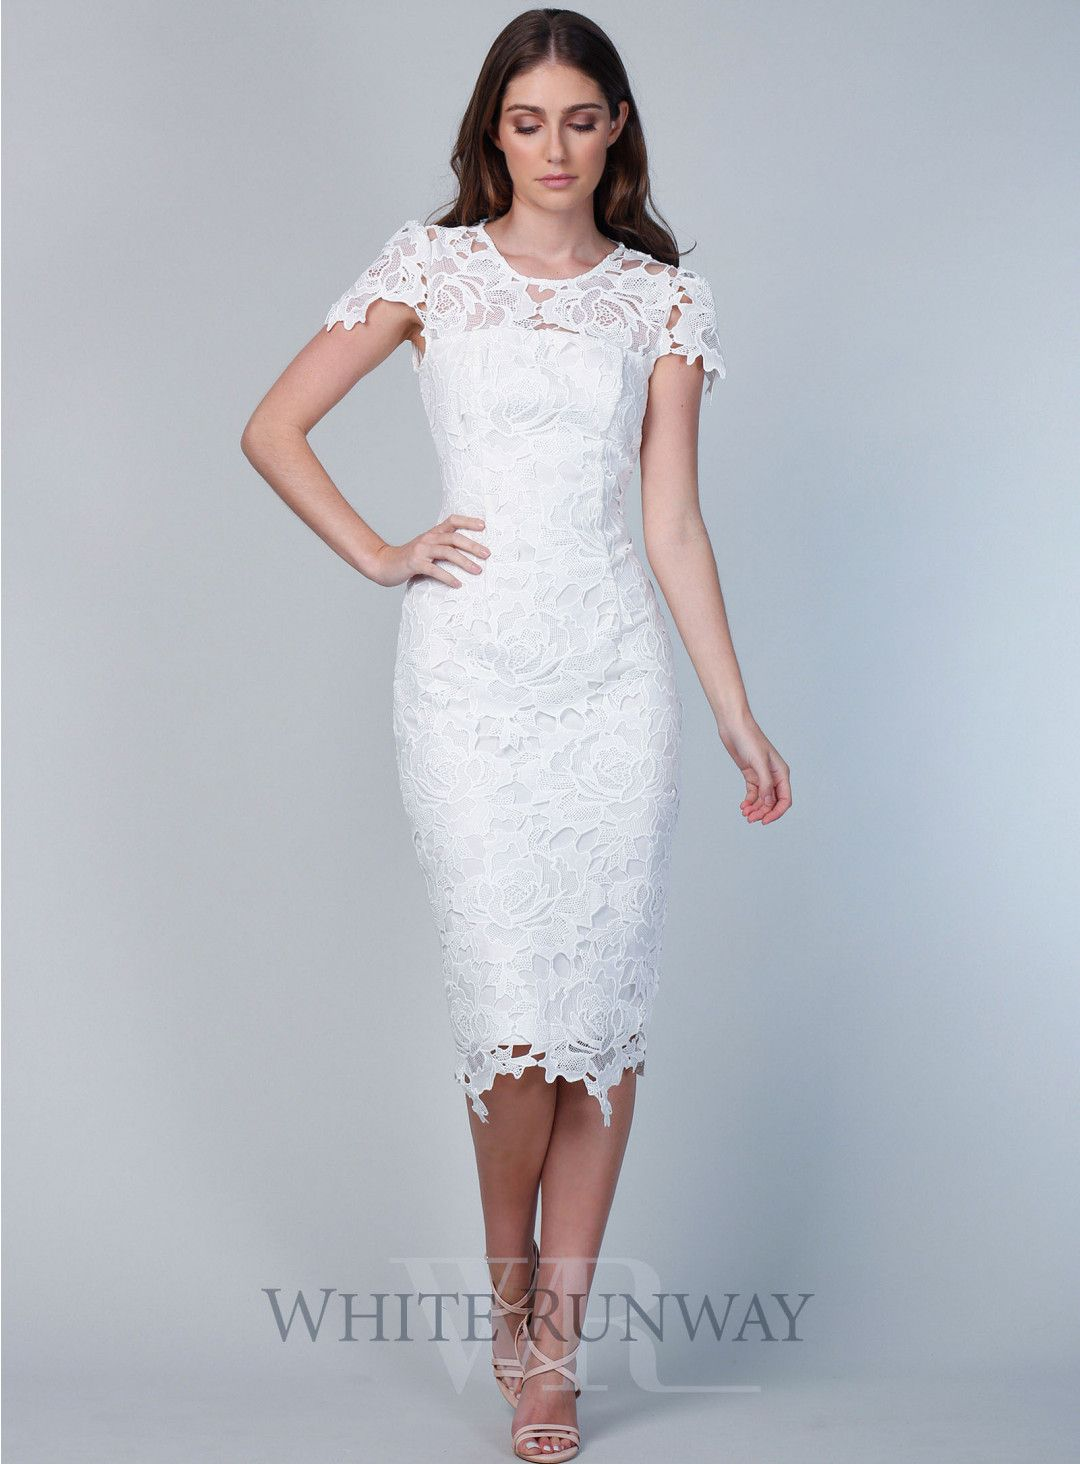 e8cd6d3d86b4 Jolie Lace Dress. A beautiful midi length dress by Romance the Label. A  sheer lace high neck style featuring cap sleeves and an assymetric skirt  hemline.